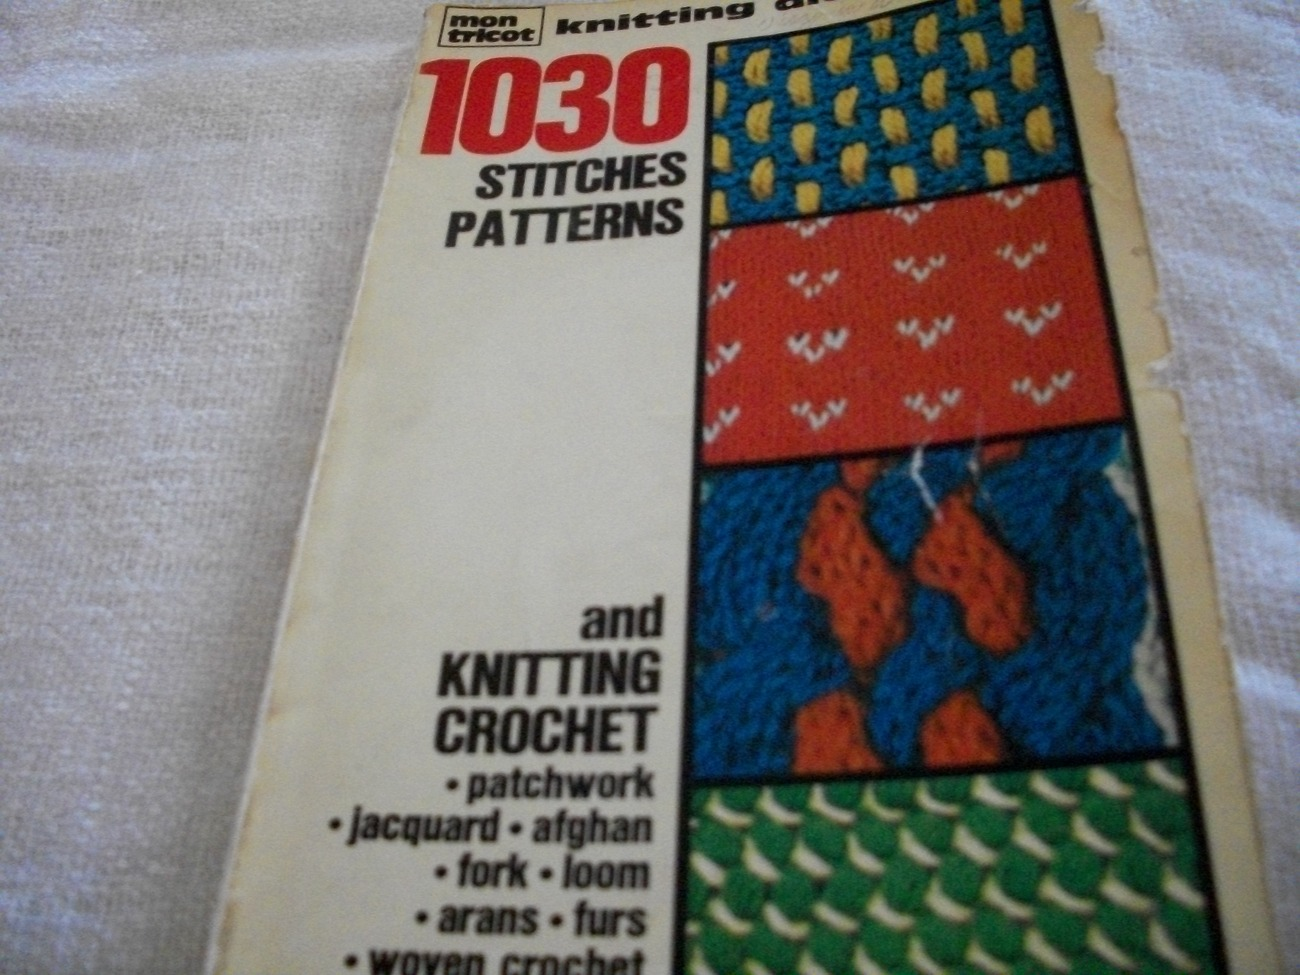 Knitting Dictionary of Stitch Patterns - Other